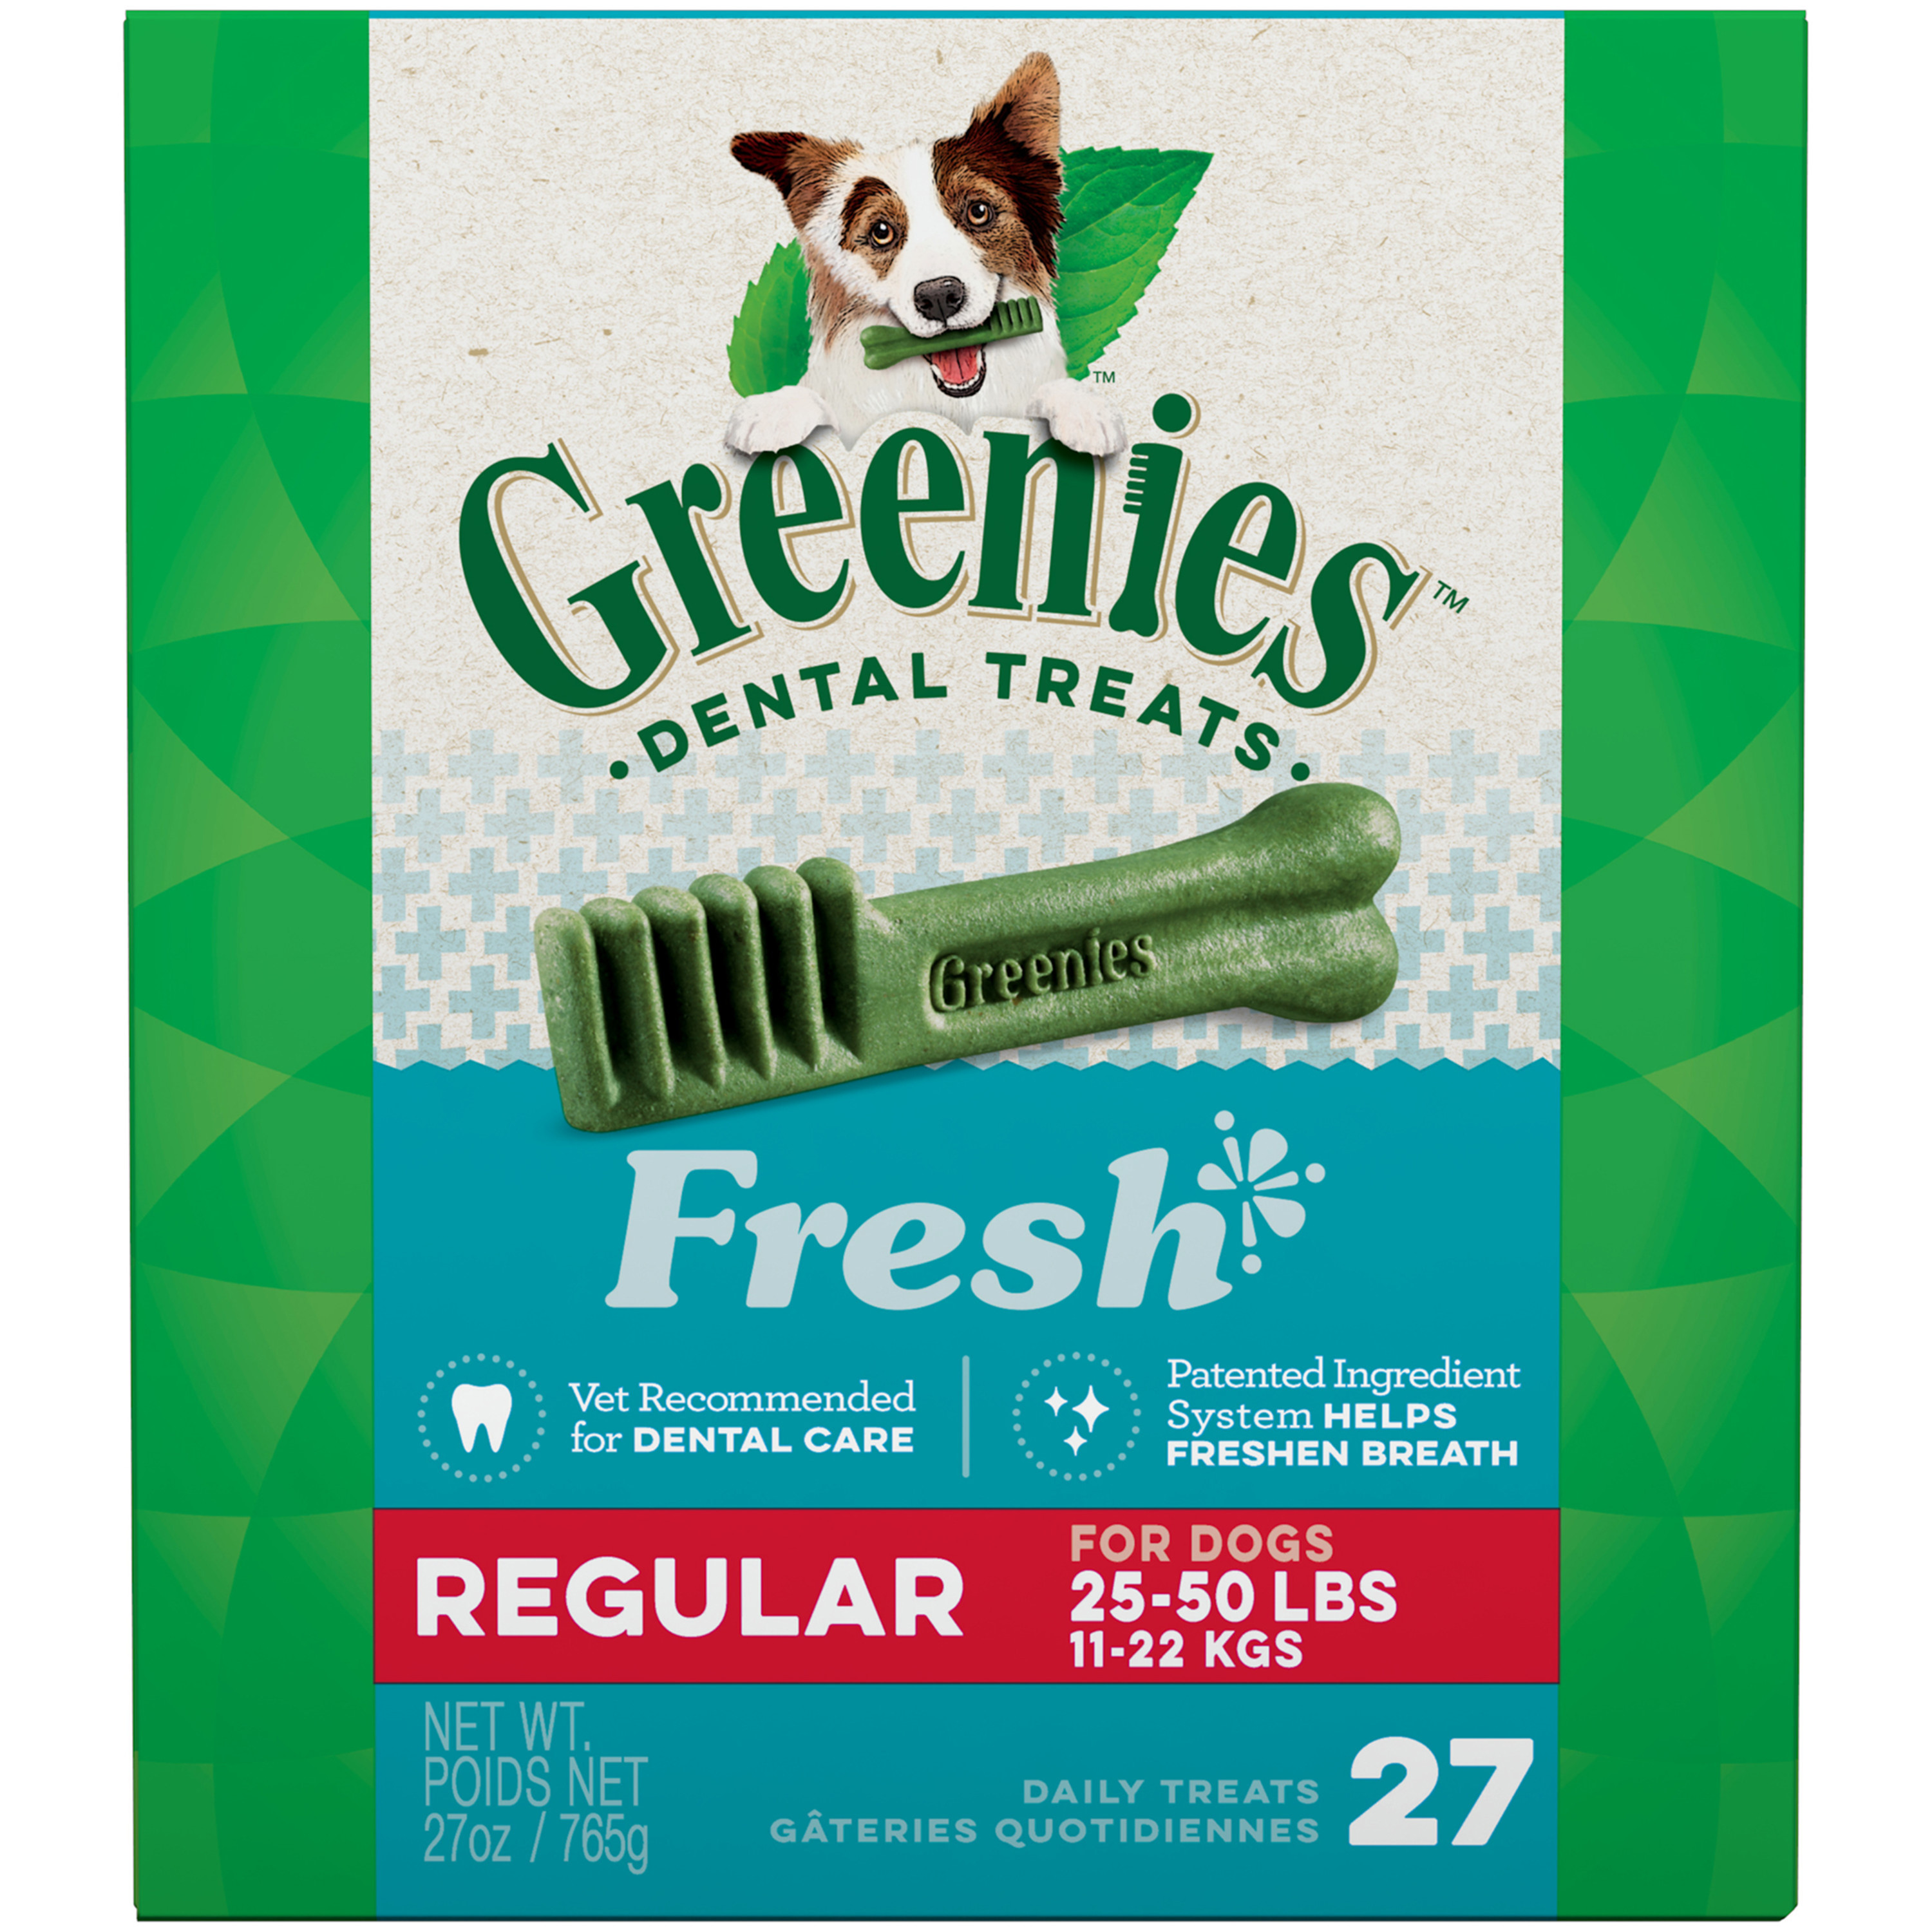 GREENIES Fresh Regular Size Dental Dog Treats, 27 oz. Pack (27 Treats)